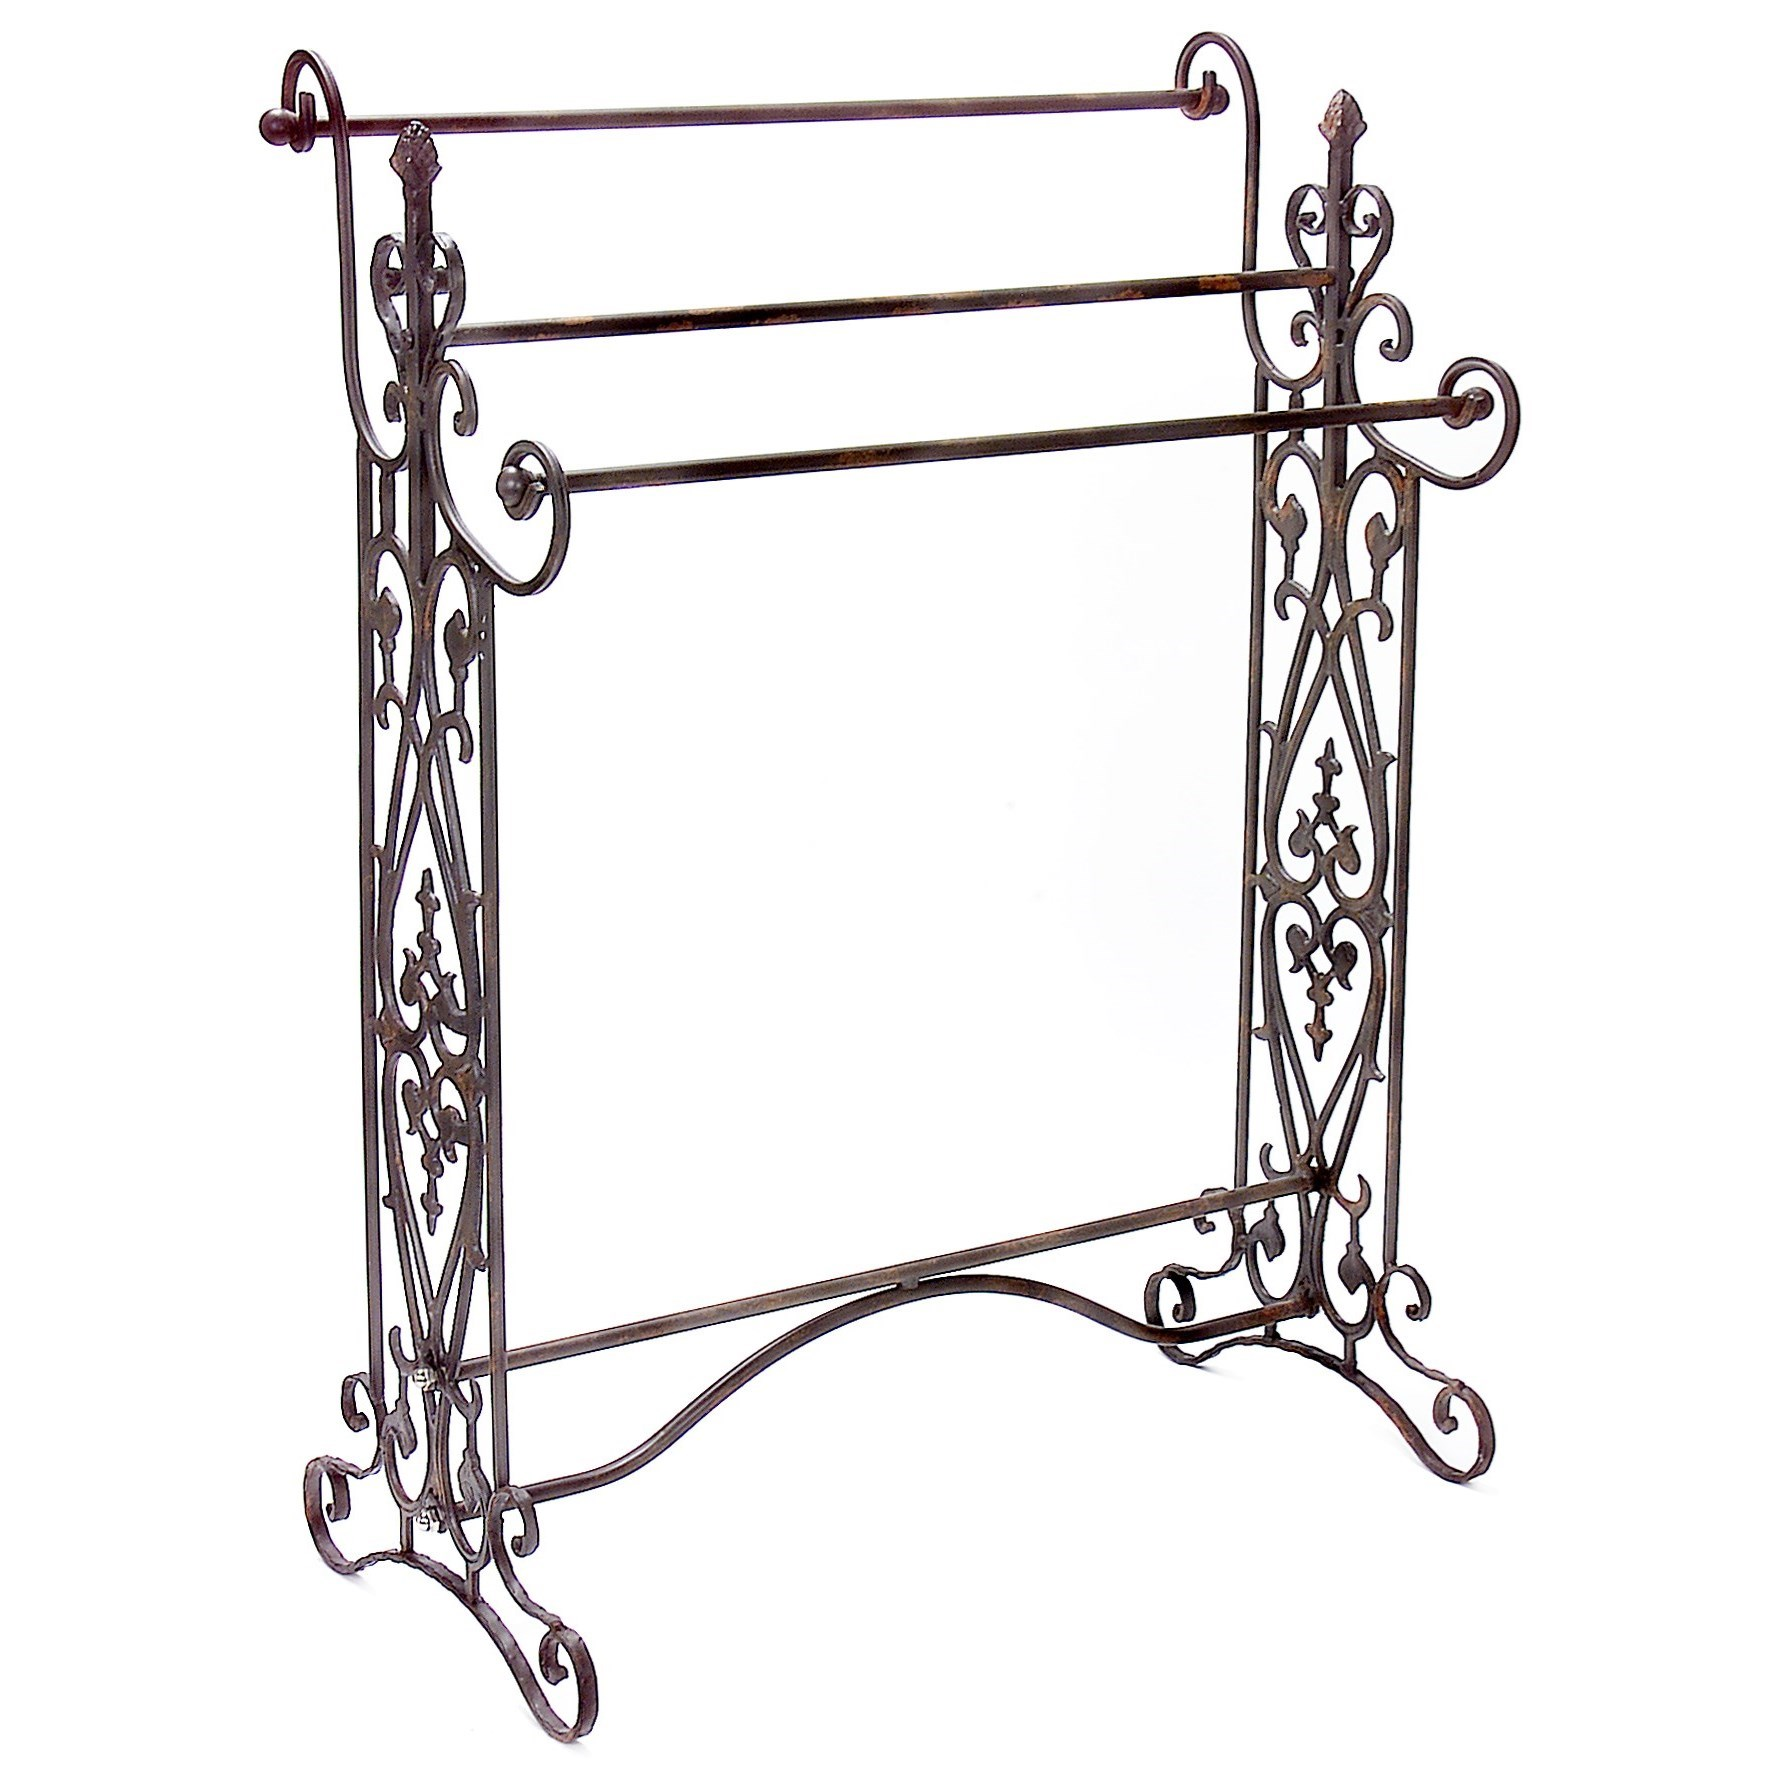 Accessories Quilt/Towel Rack by IMAX Worldwide Home at Alison Craig Home Furnishings